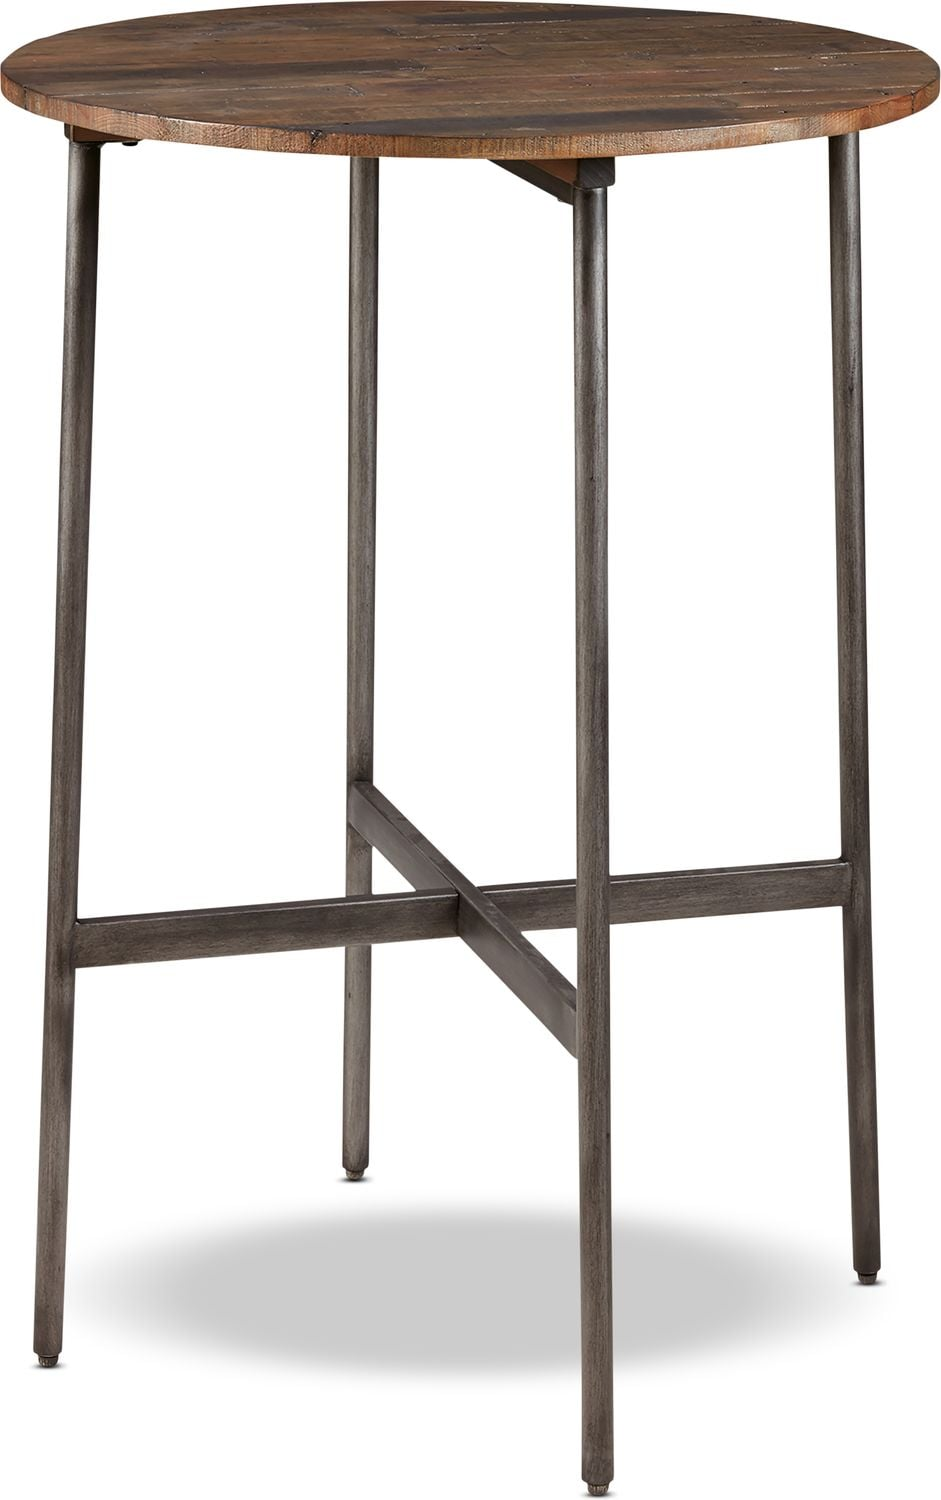 Accent and Occasional Furniture - Atwood Bar Table - Brown